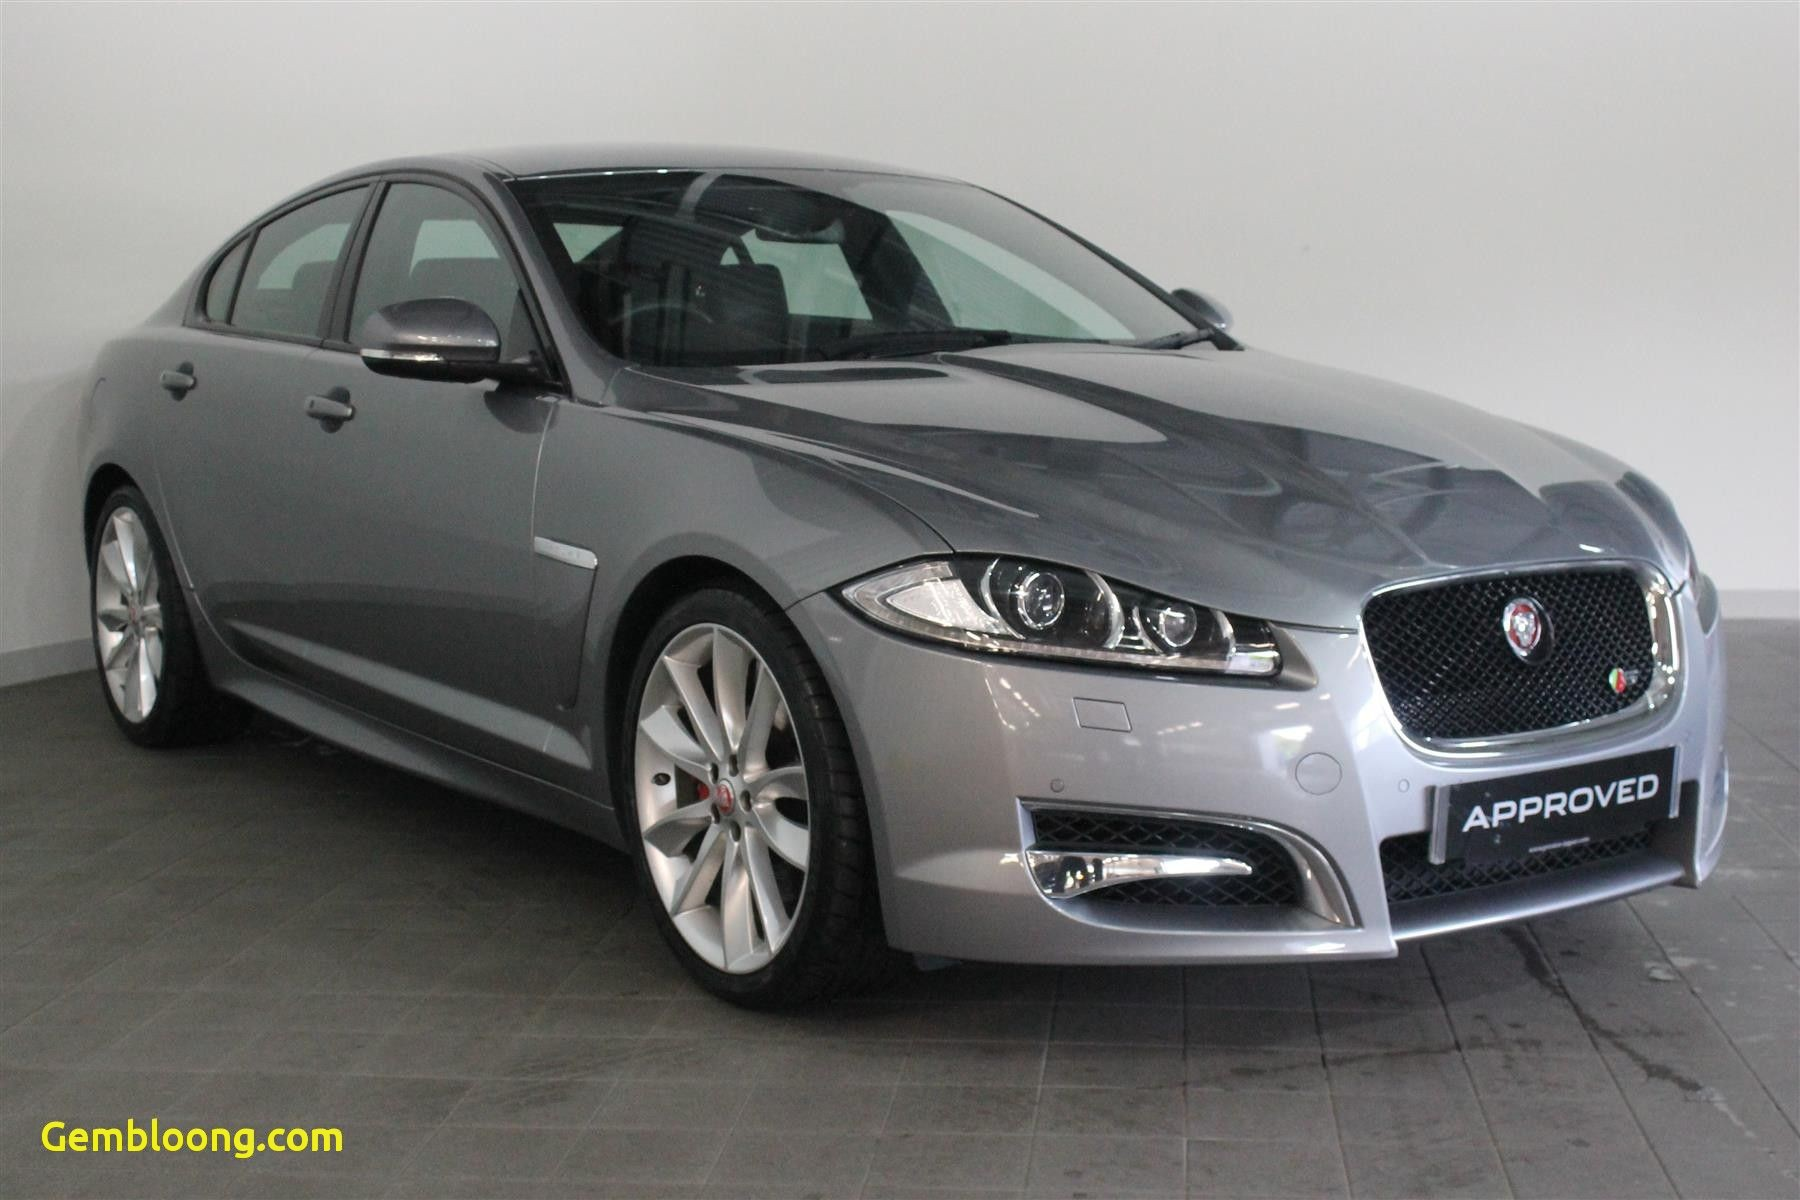 2010 Jaguar Xf Best Of Lovely Used V6 Cars for Sale Near Me Wel E for You to the